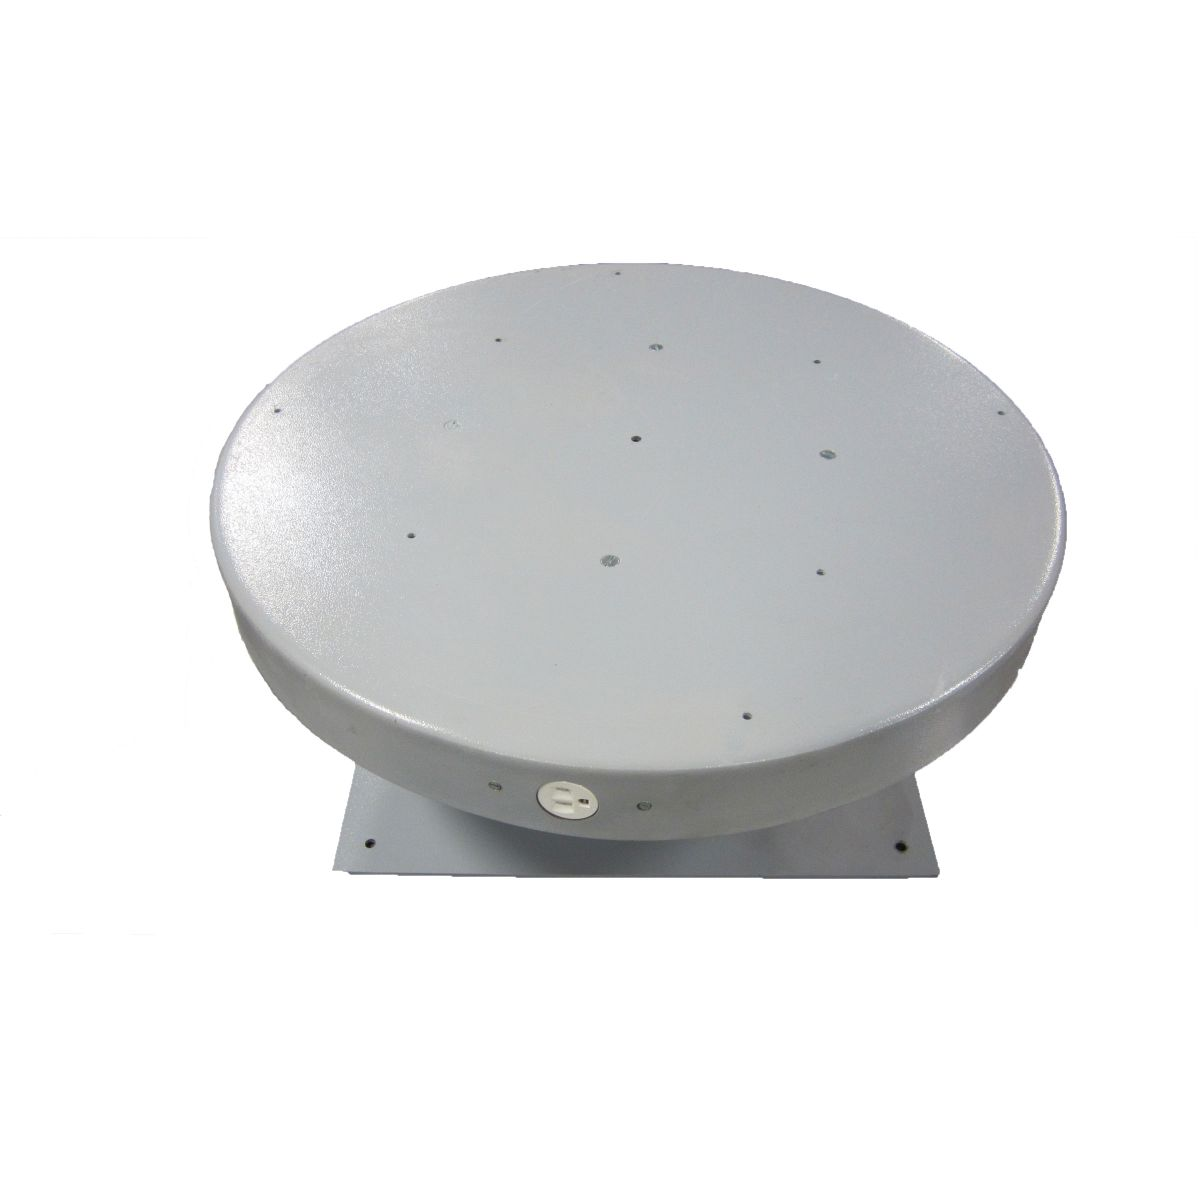 "Ultra Heavy Duty Turntable - 24"" Round - 750 Pounds"